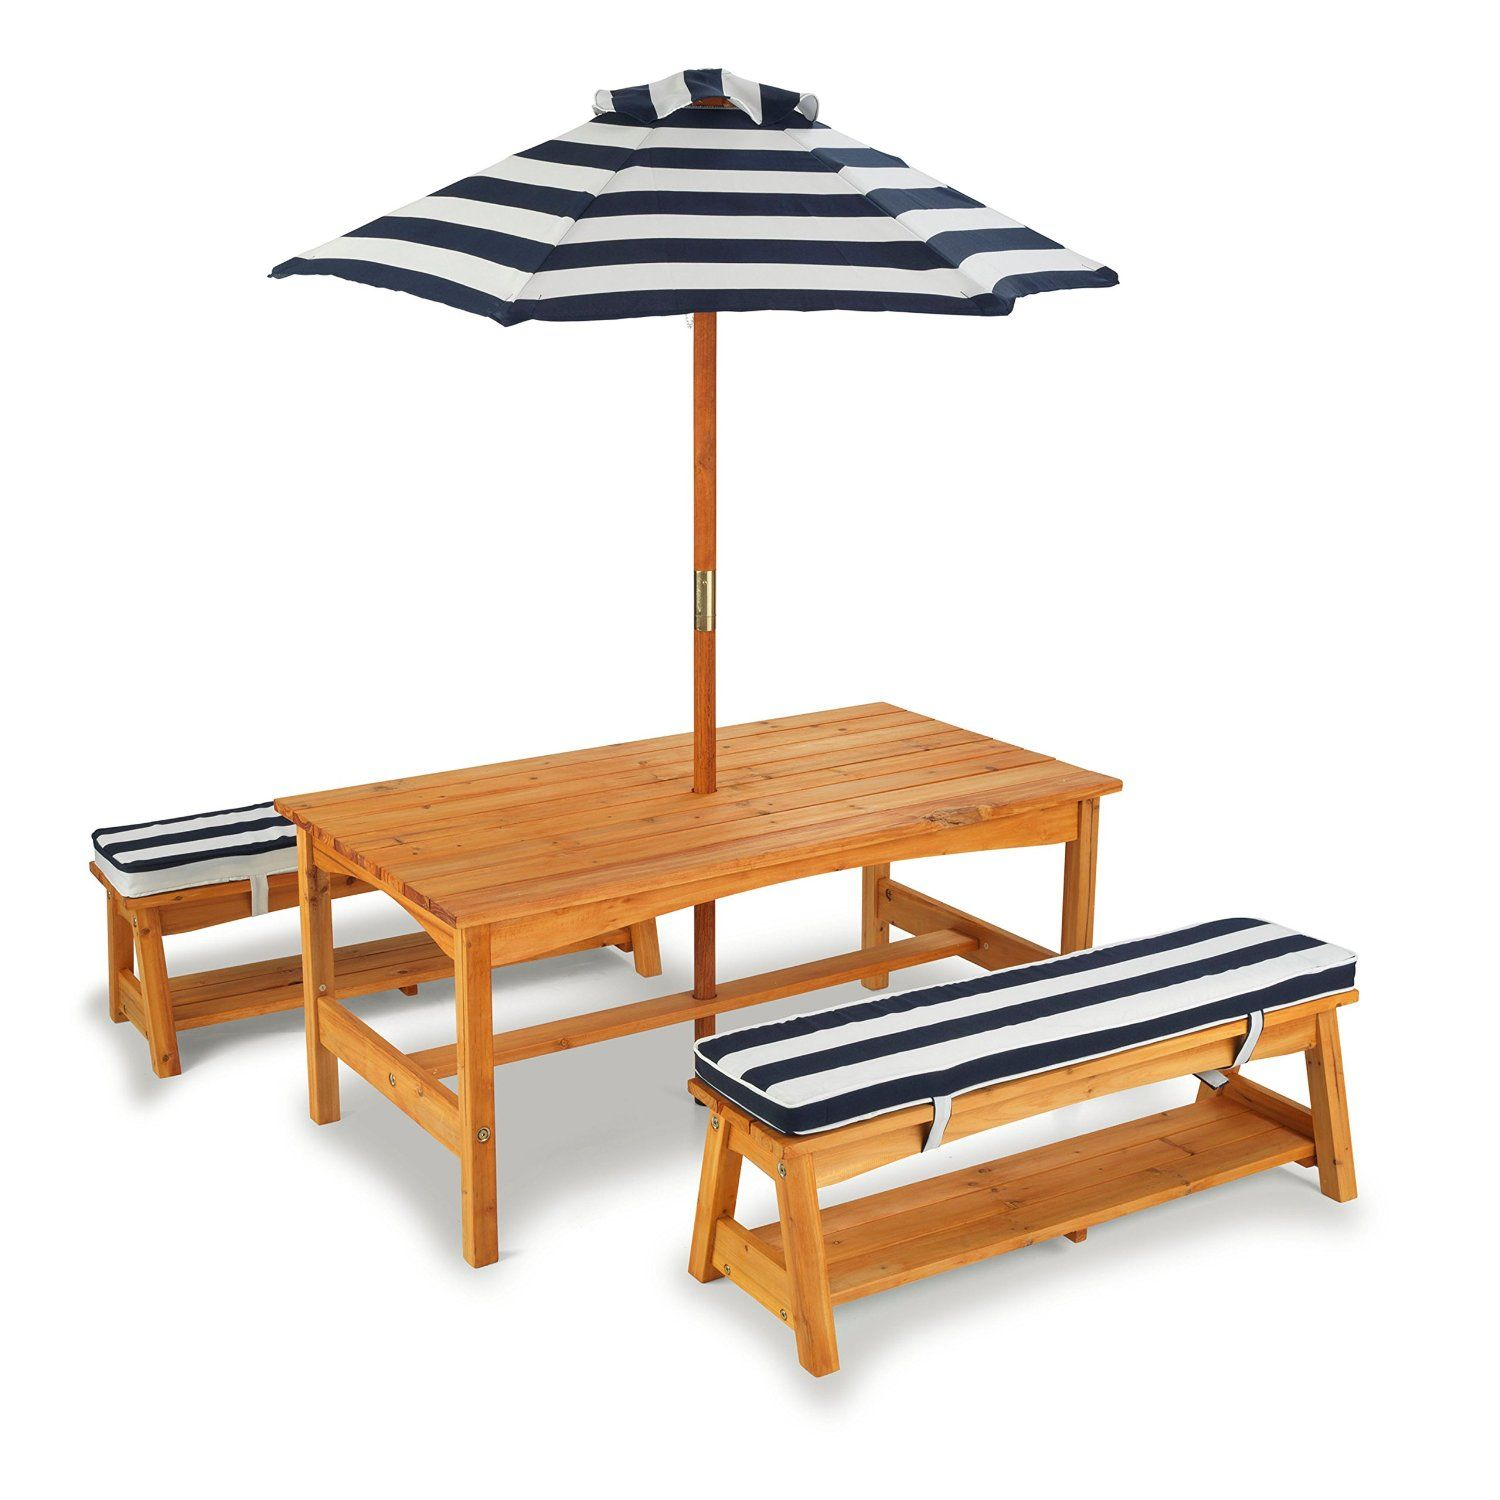 Amazon.com KidKraft Outdoor table and Chair Set with Cushions and Navy Stripes  sc 1 st  Pinterest & Amazon.com: KidKraft Outdoor table and Chair Set with Cushions and ...